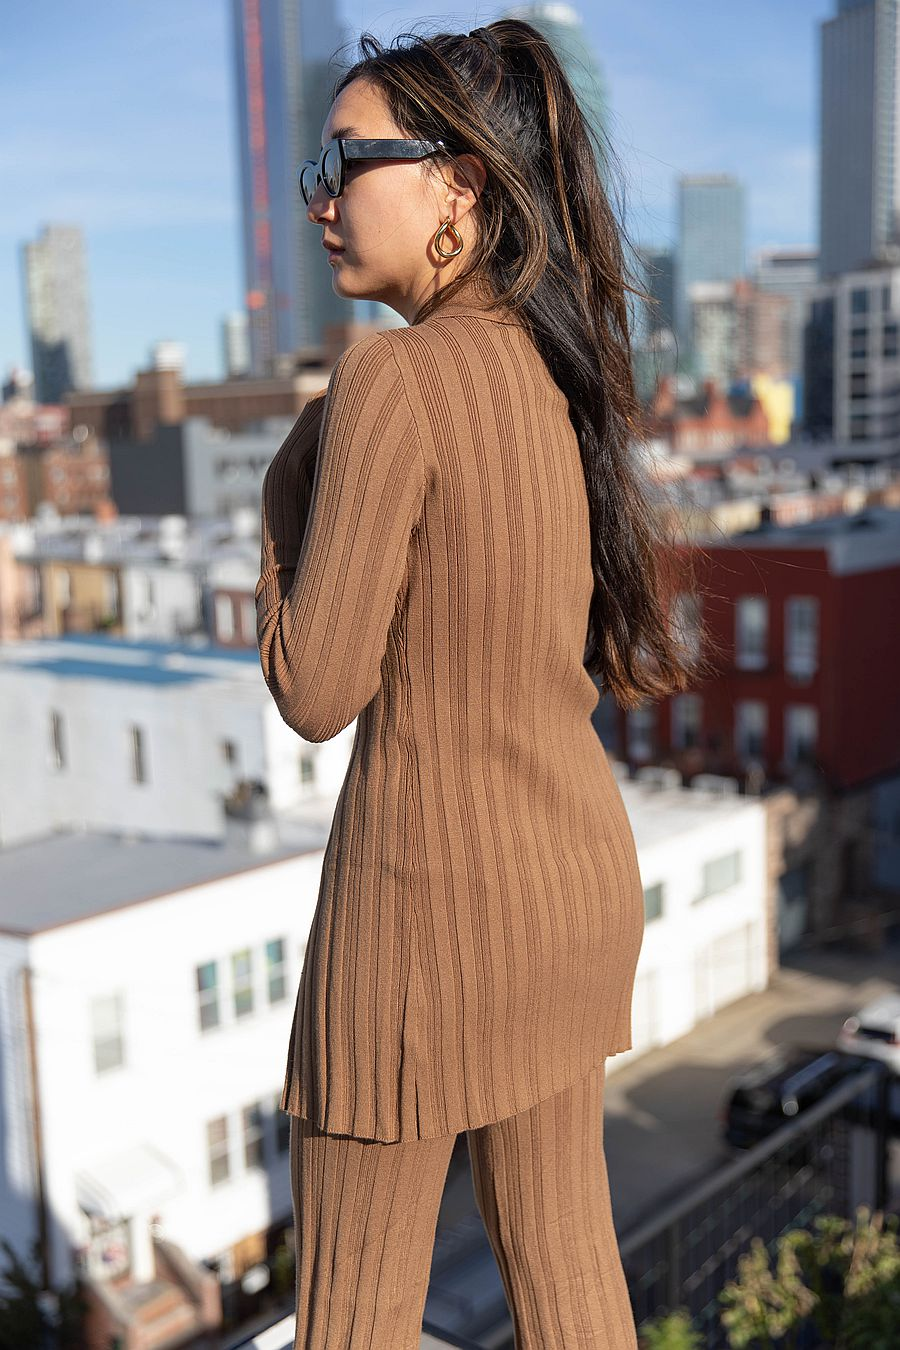 Find Me Now Blakely Knit Top - Umber